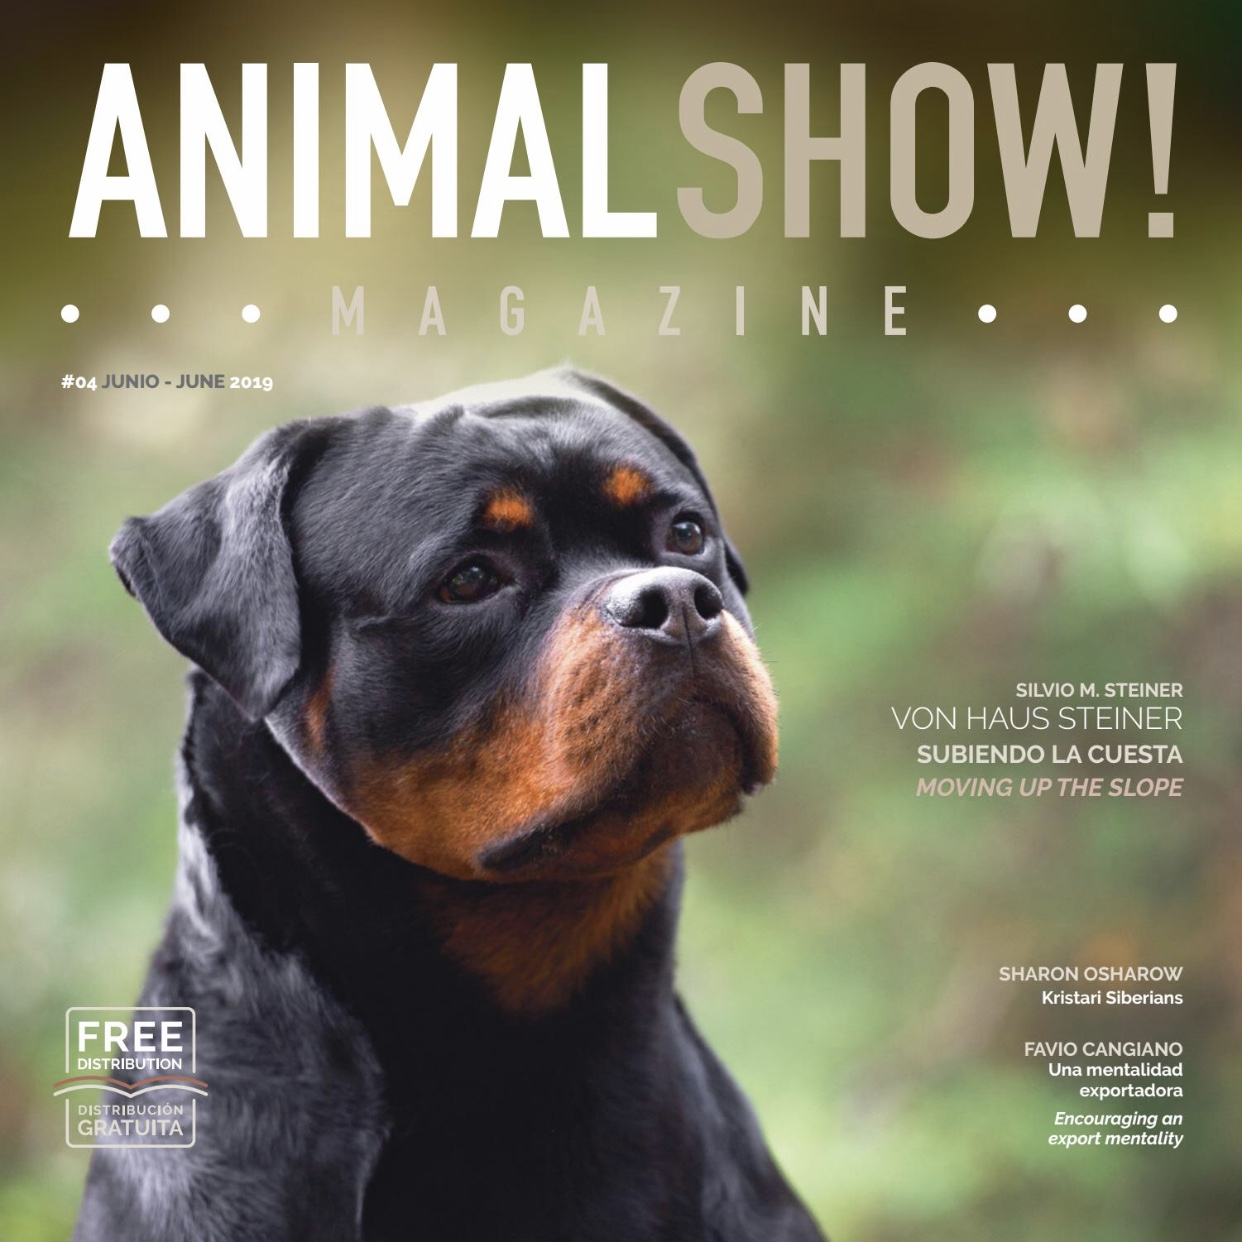 Animal Show Magazine - 4th Edition - Premium Dog Show Magazine